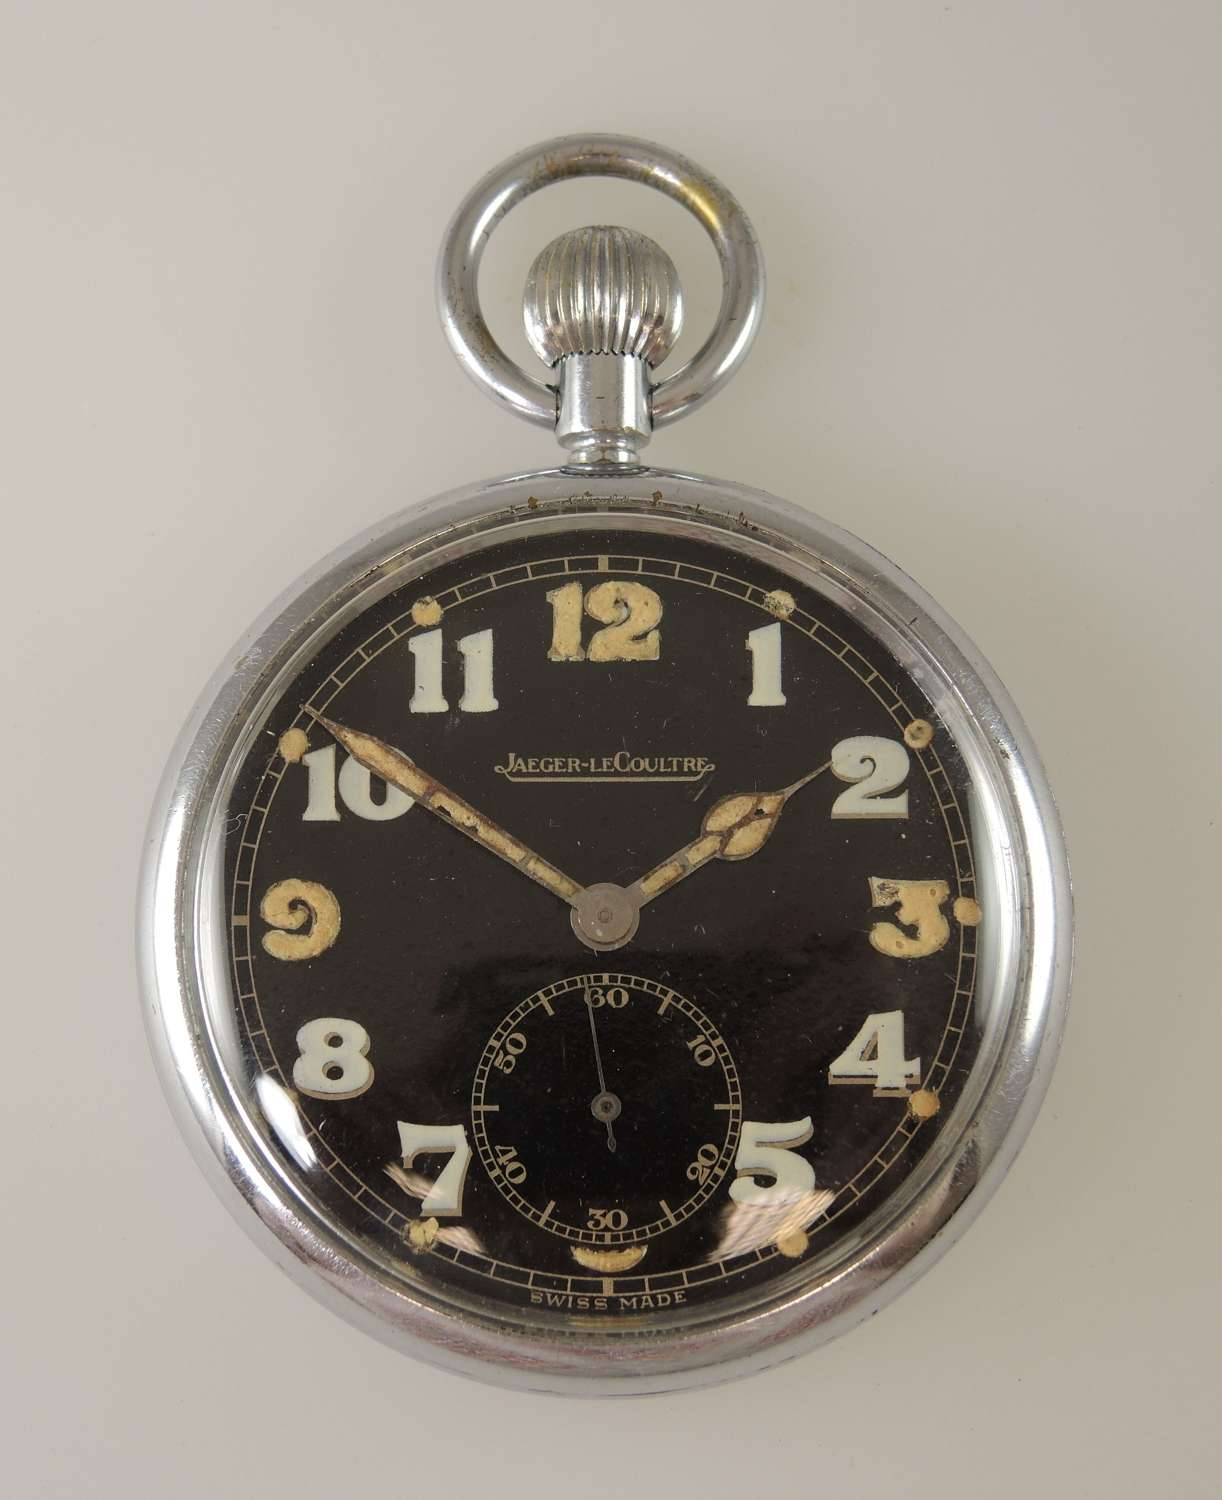 Jaeger-Le-Coultre military pocket watch c1940